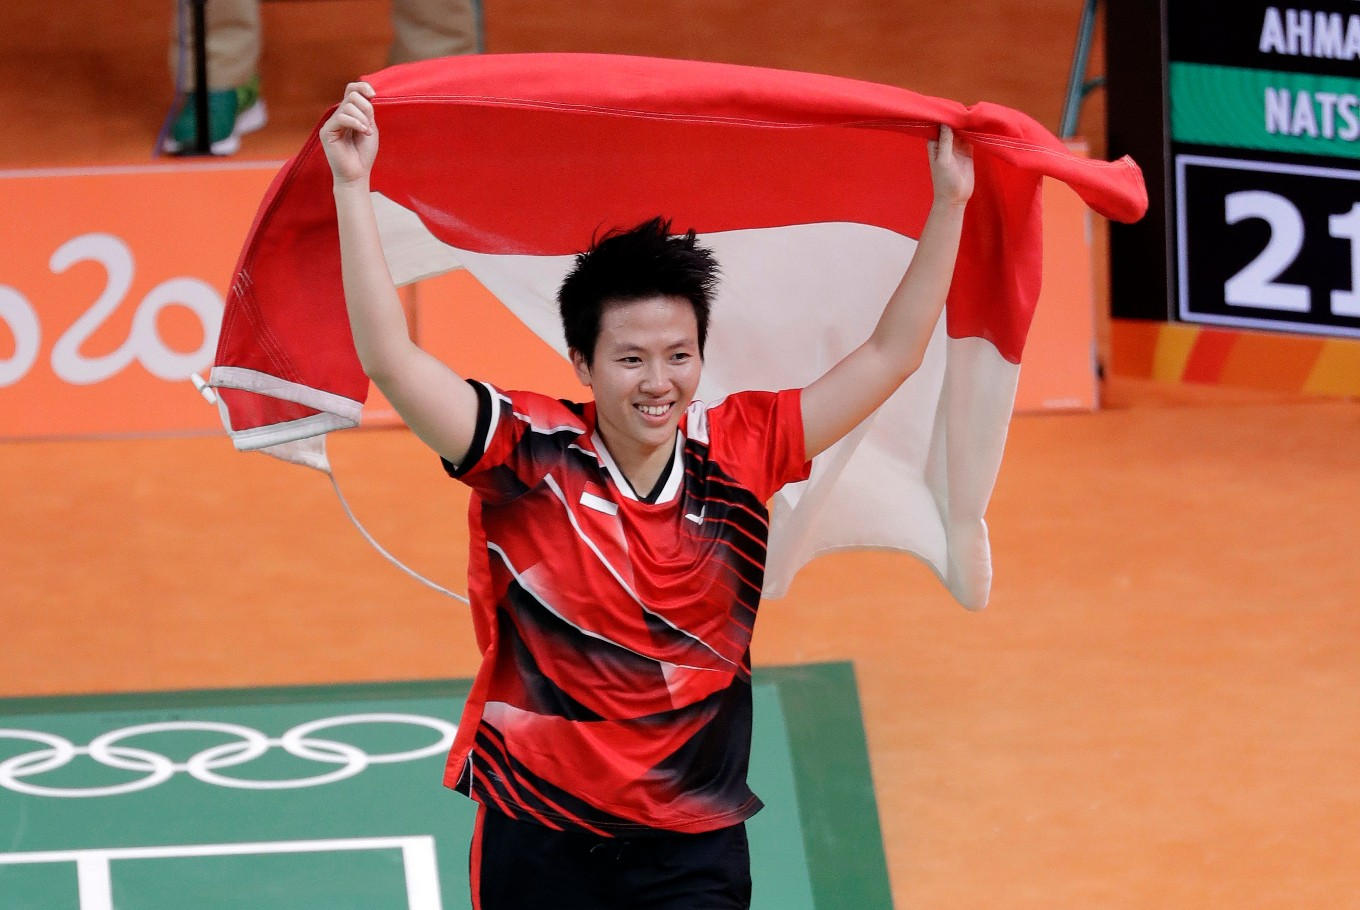 Liliyana Natsir, Indonesia's badminton mixed doubles queen